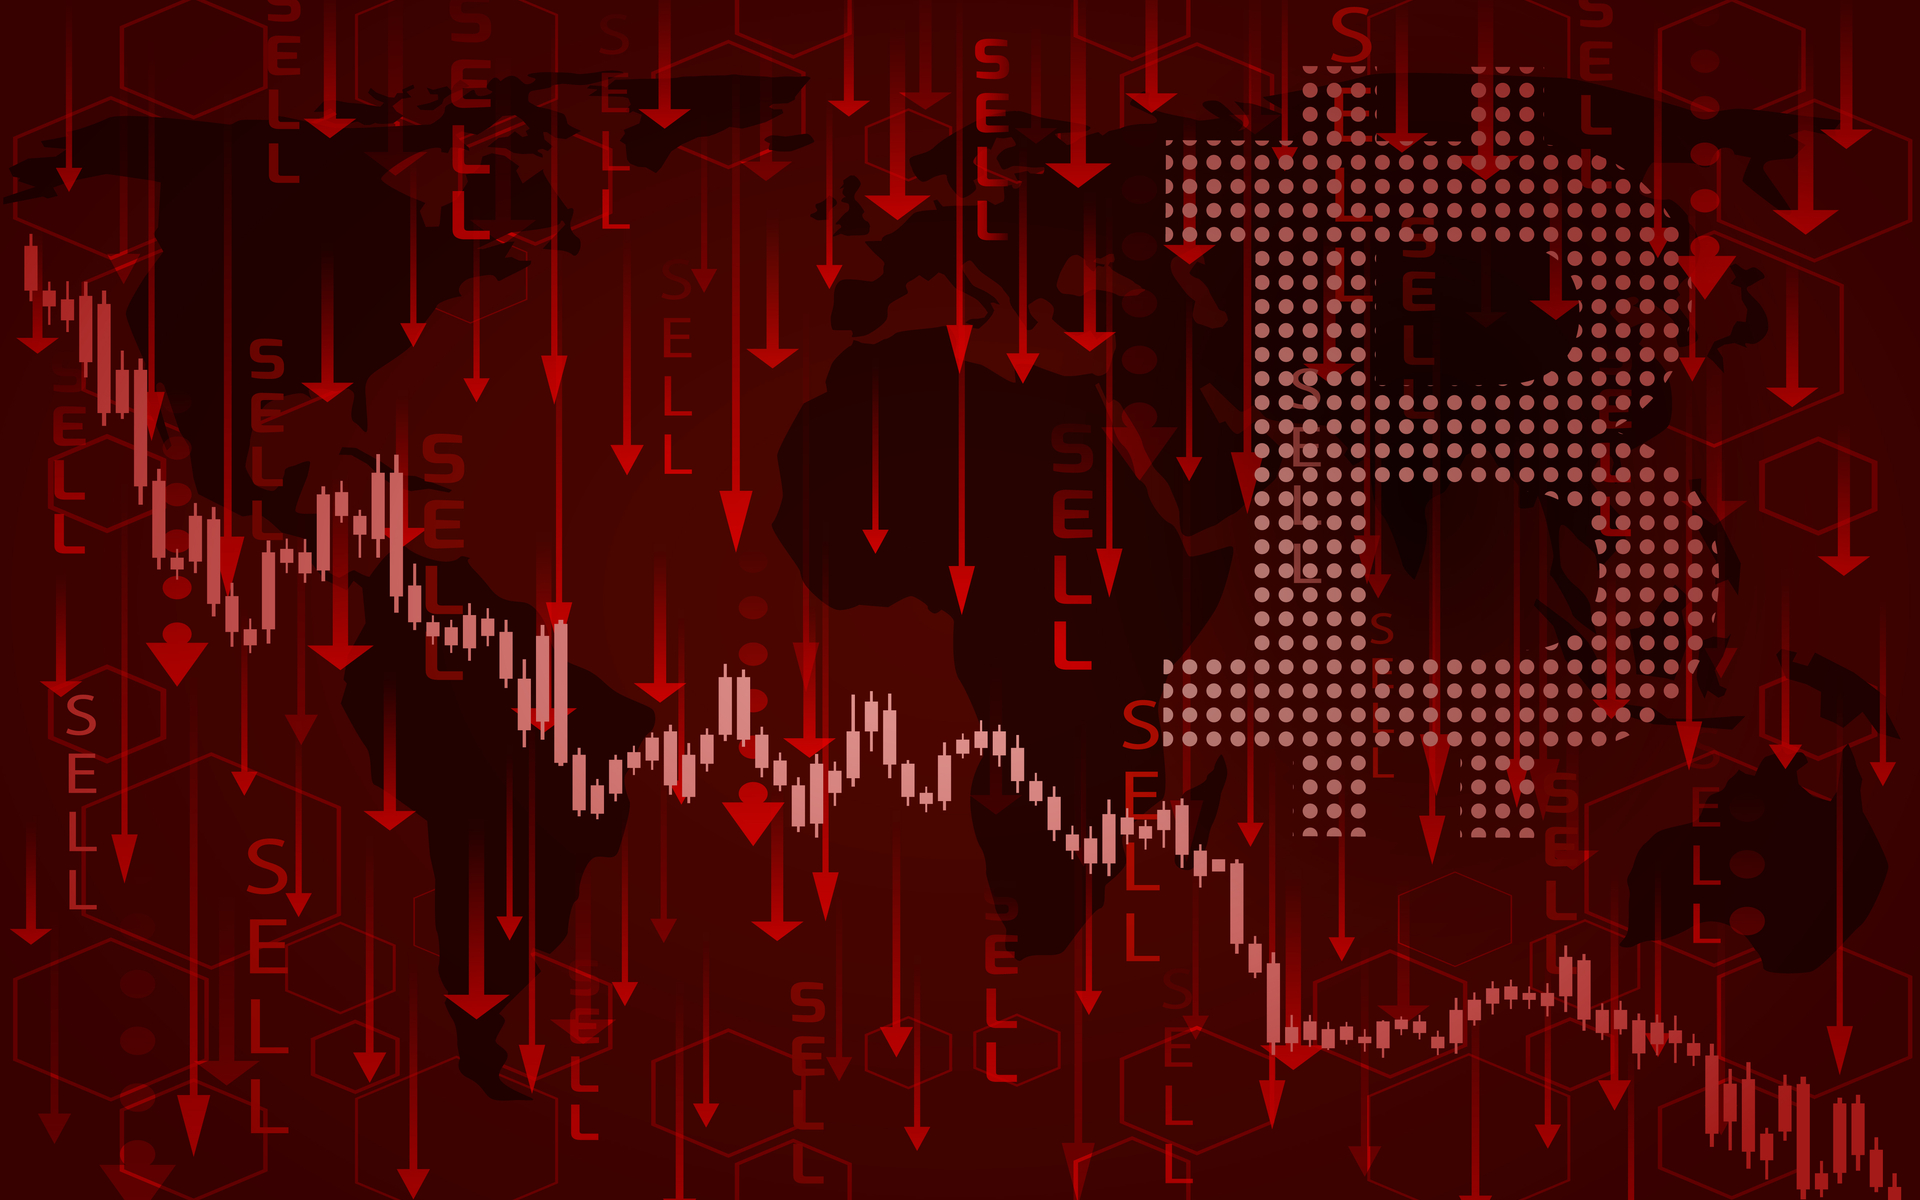 bitmex caused bitcoin btc price crash